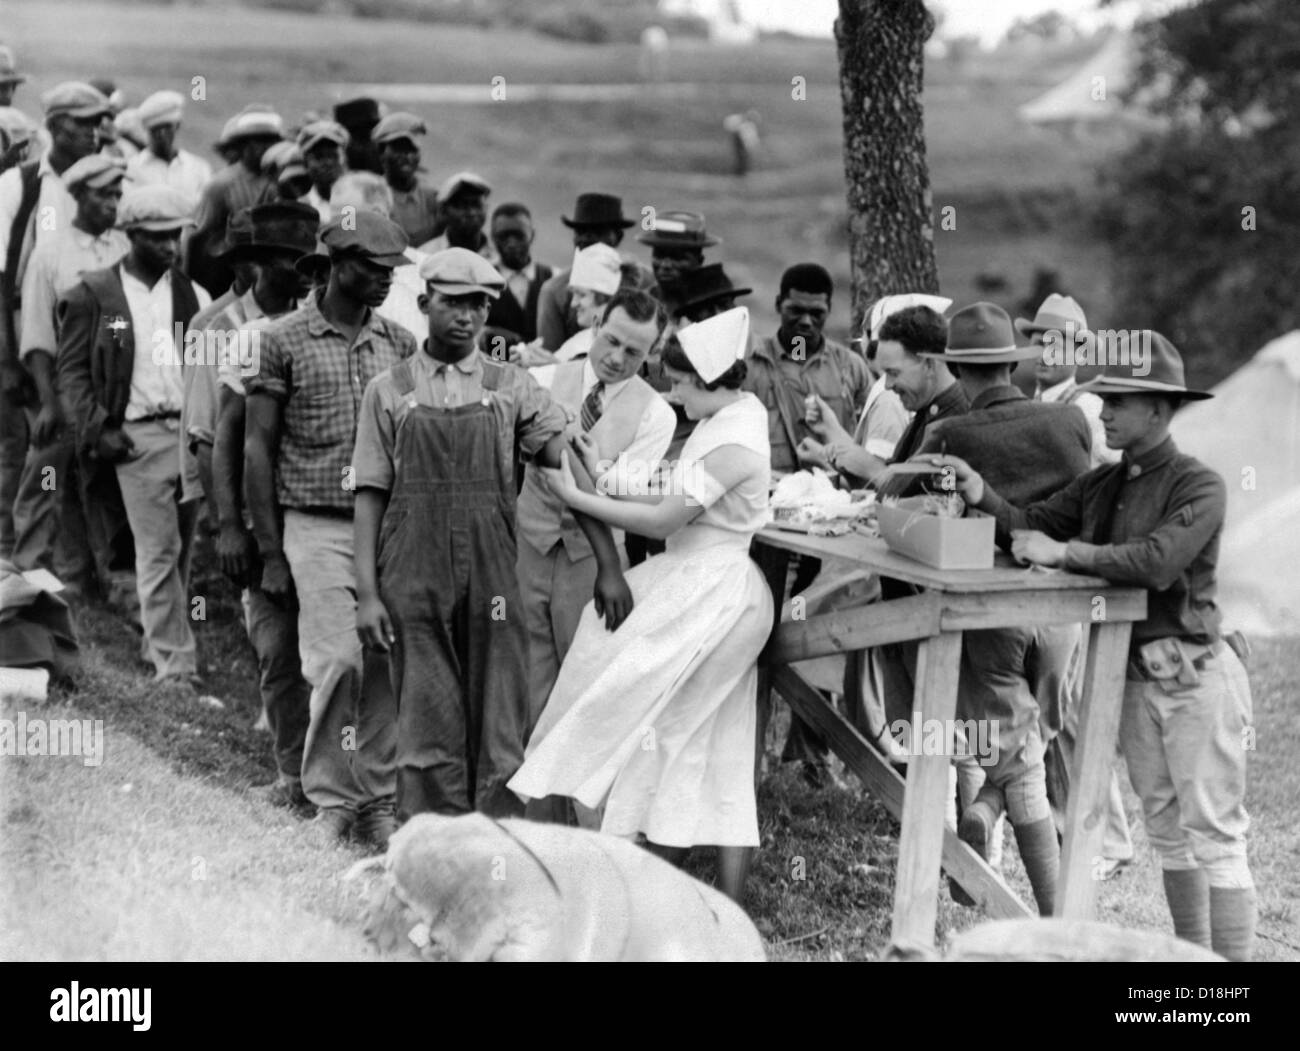 African American flood refugees vaccinated for typhoid at Camp Louisiana, near Vicksburg. Many would have joined Stock Photo